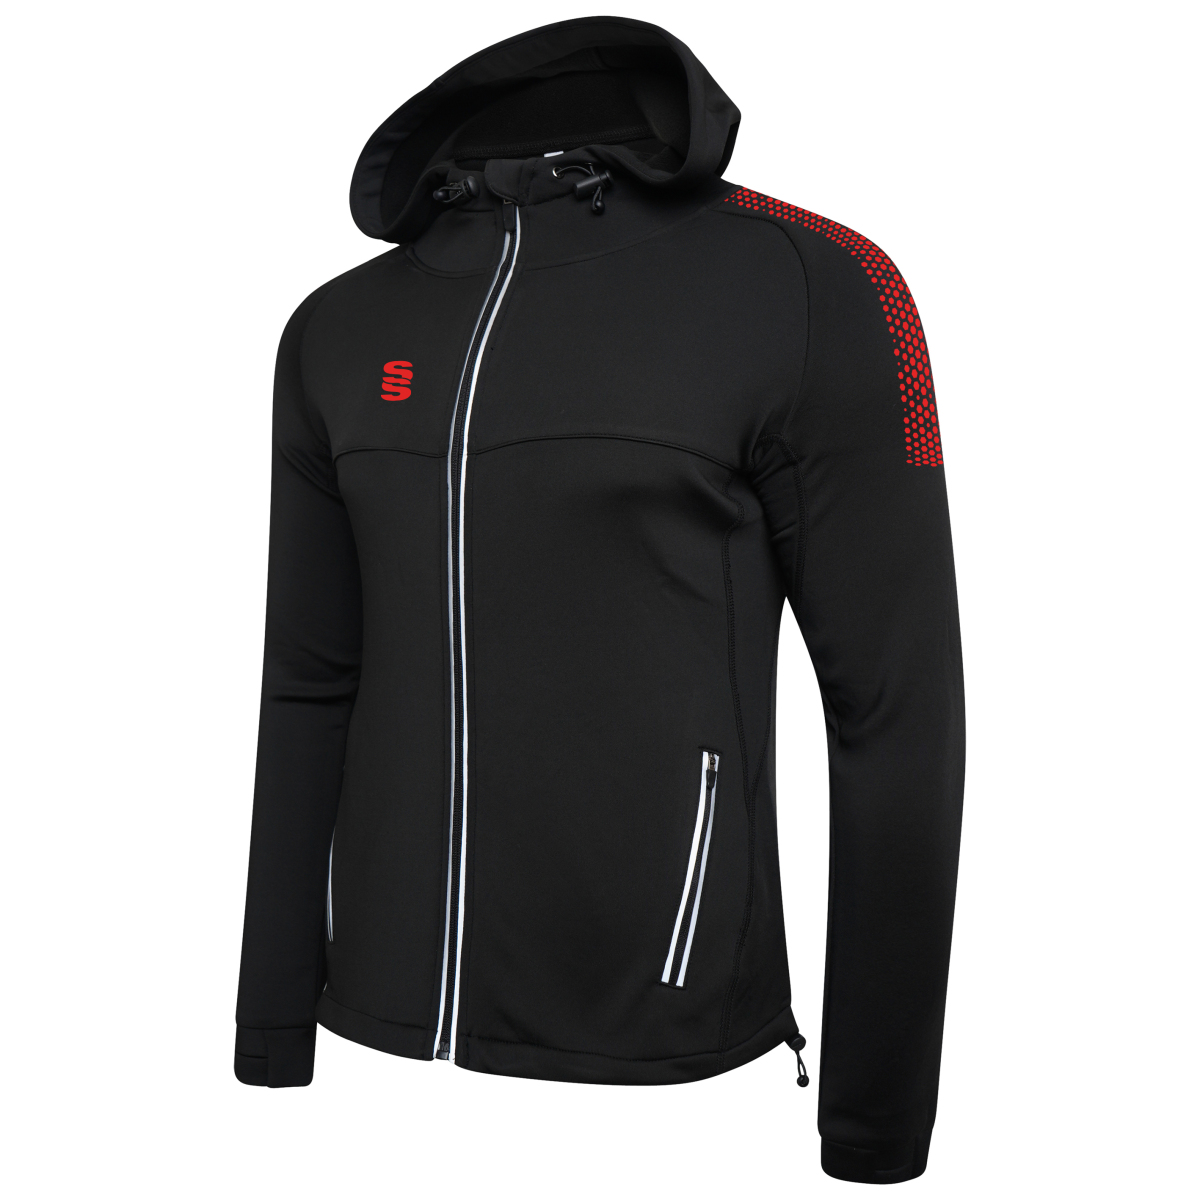 Dual Zipped Hoody